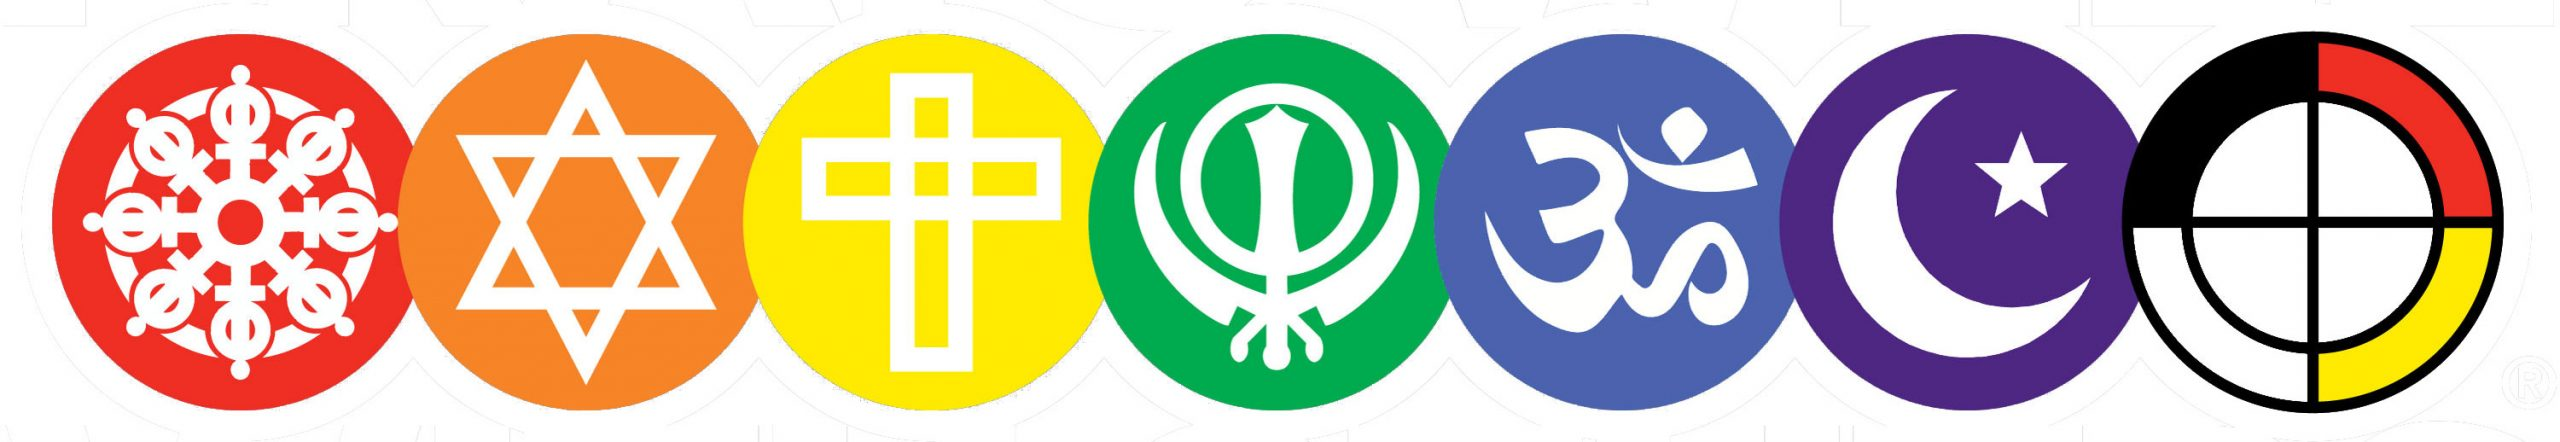 Logos of many faiths